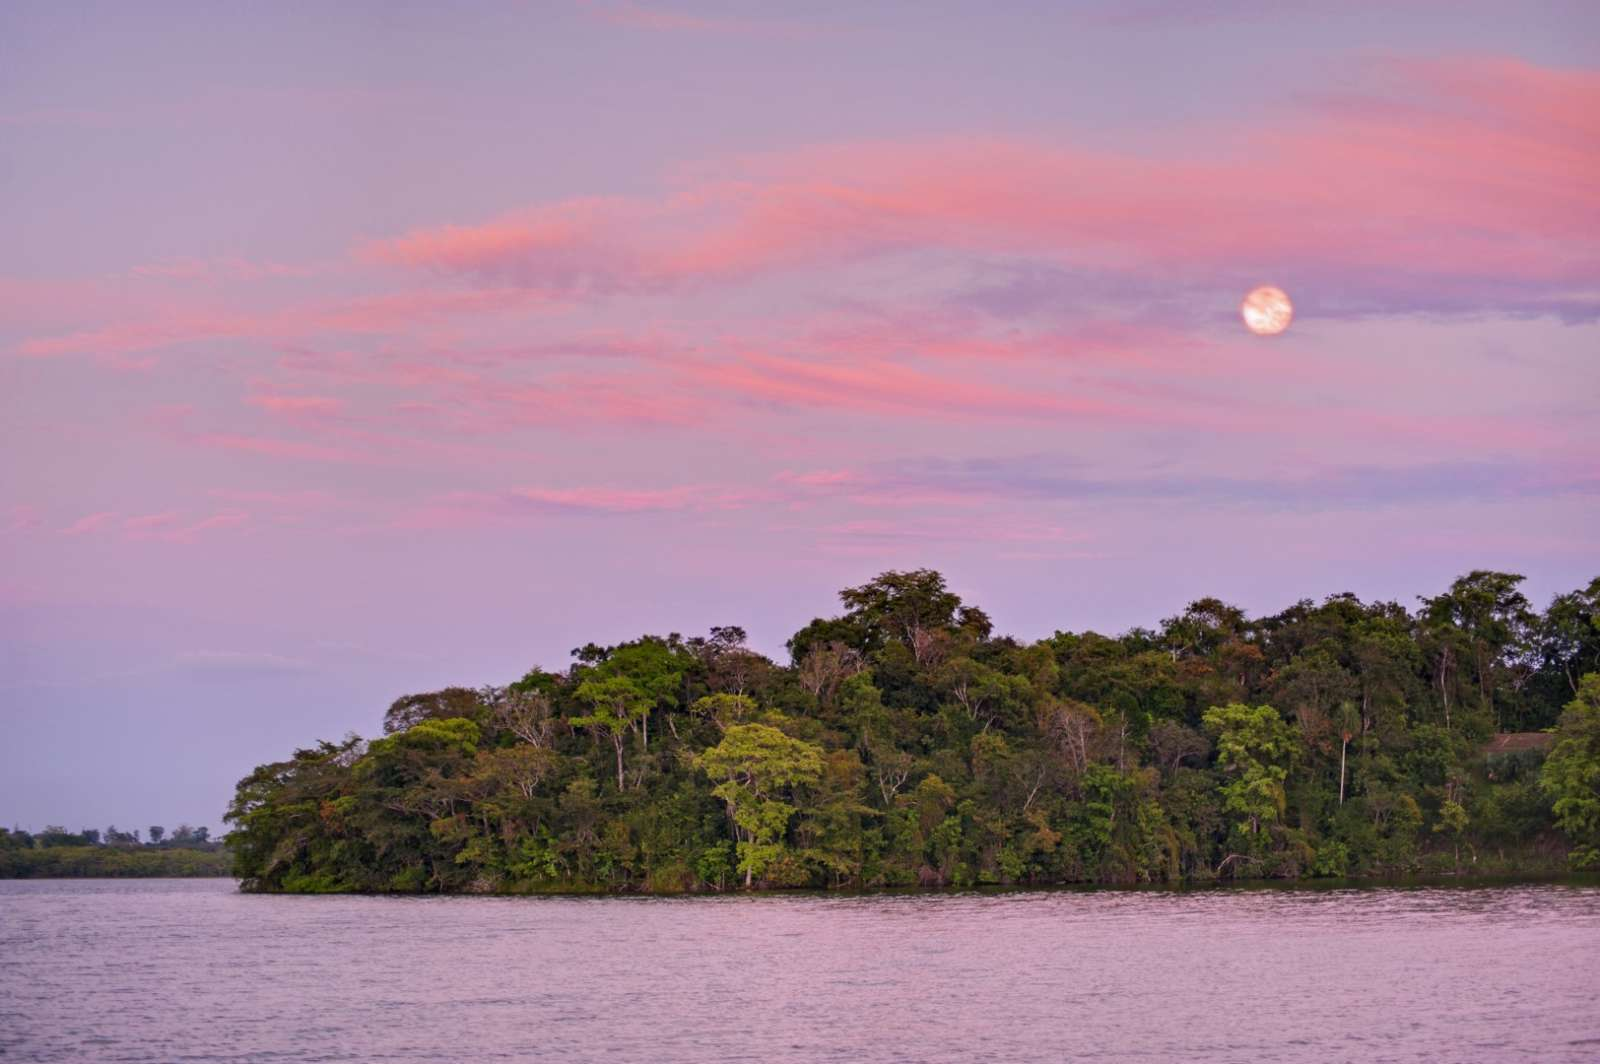 Moon over lake at Hotel Las Lagunas, Guatemala